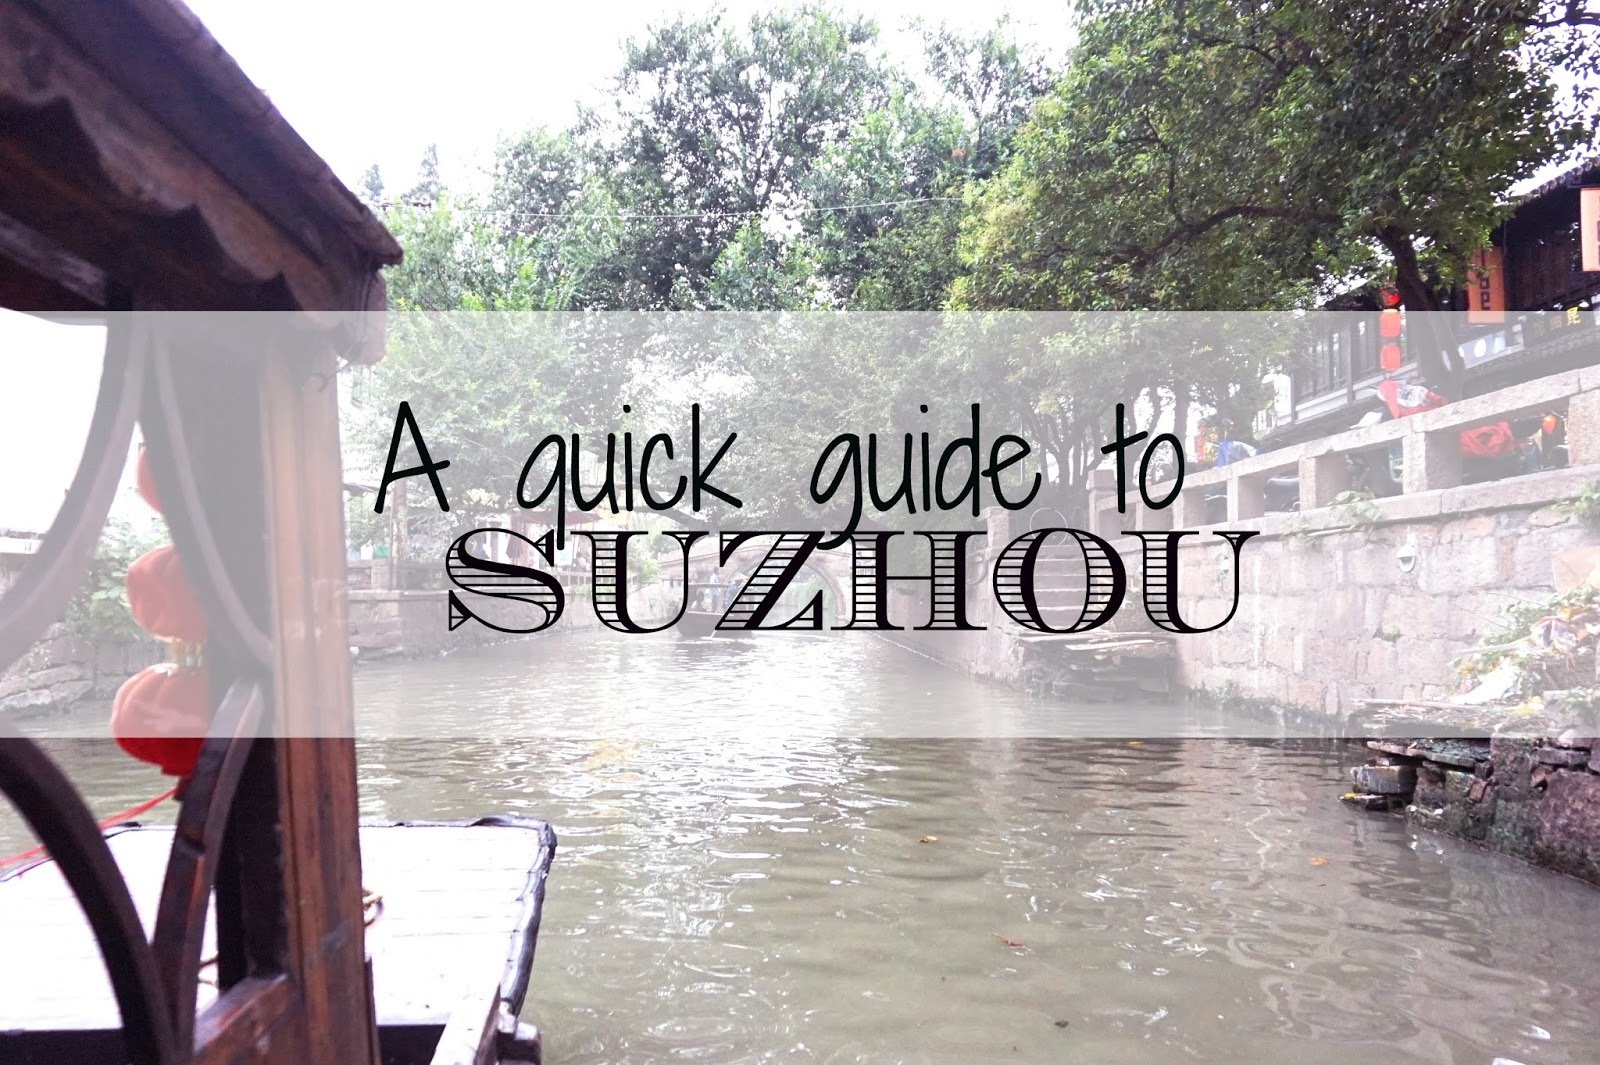 A QUICK GUIDE TO: SUZHOU